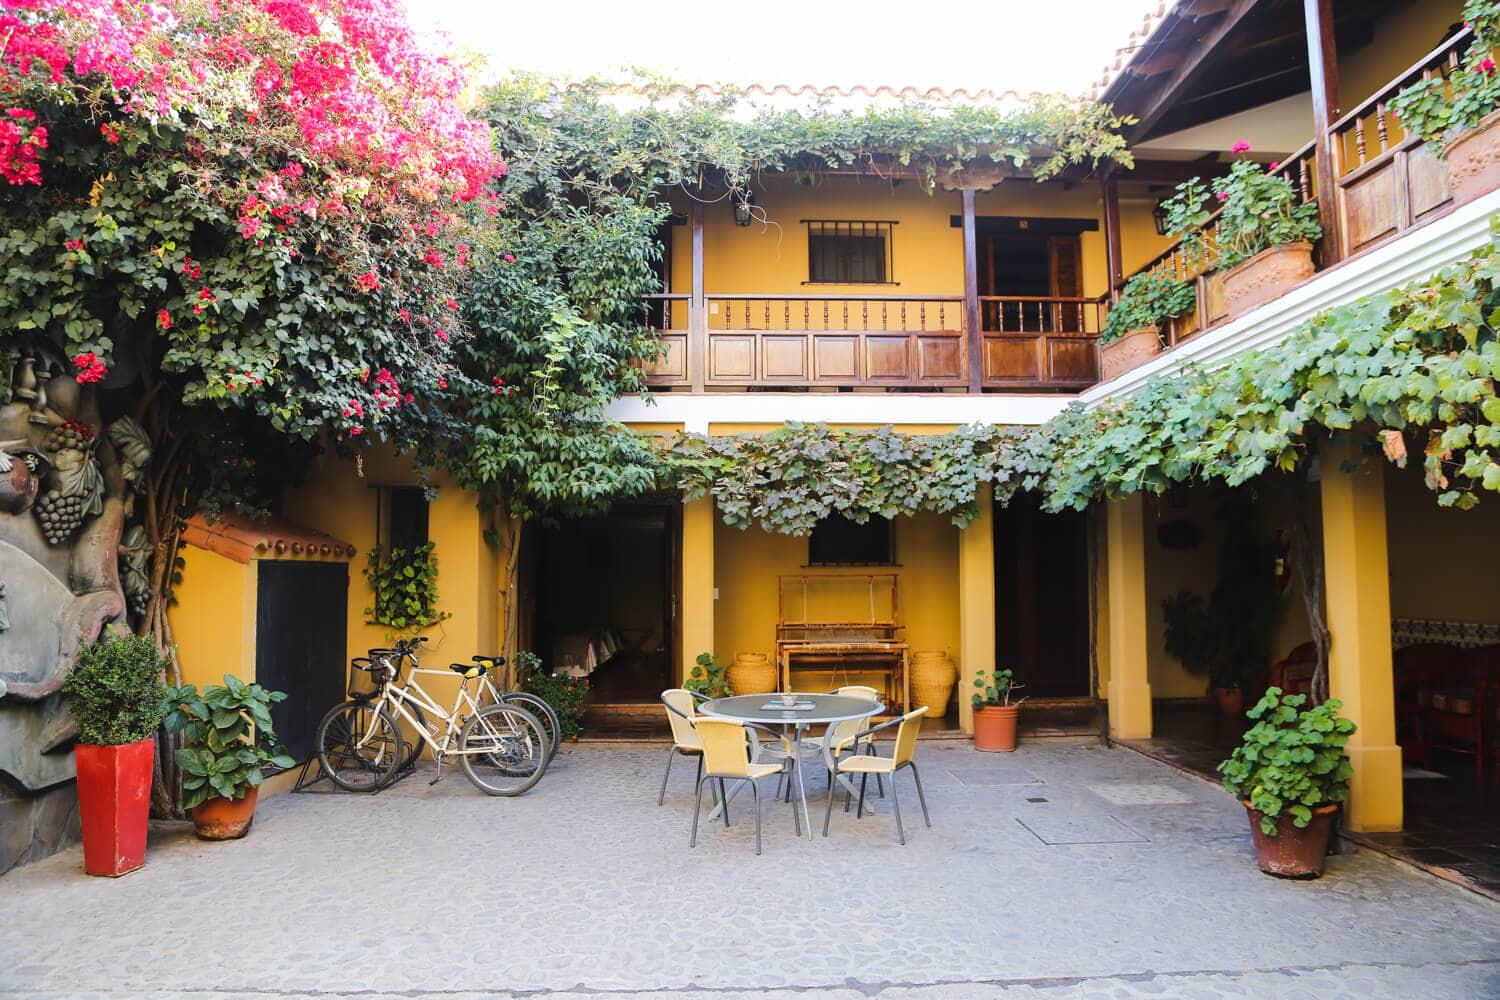 Bicycles and a table sit in the courtyard of a two story colonial style home